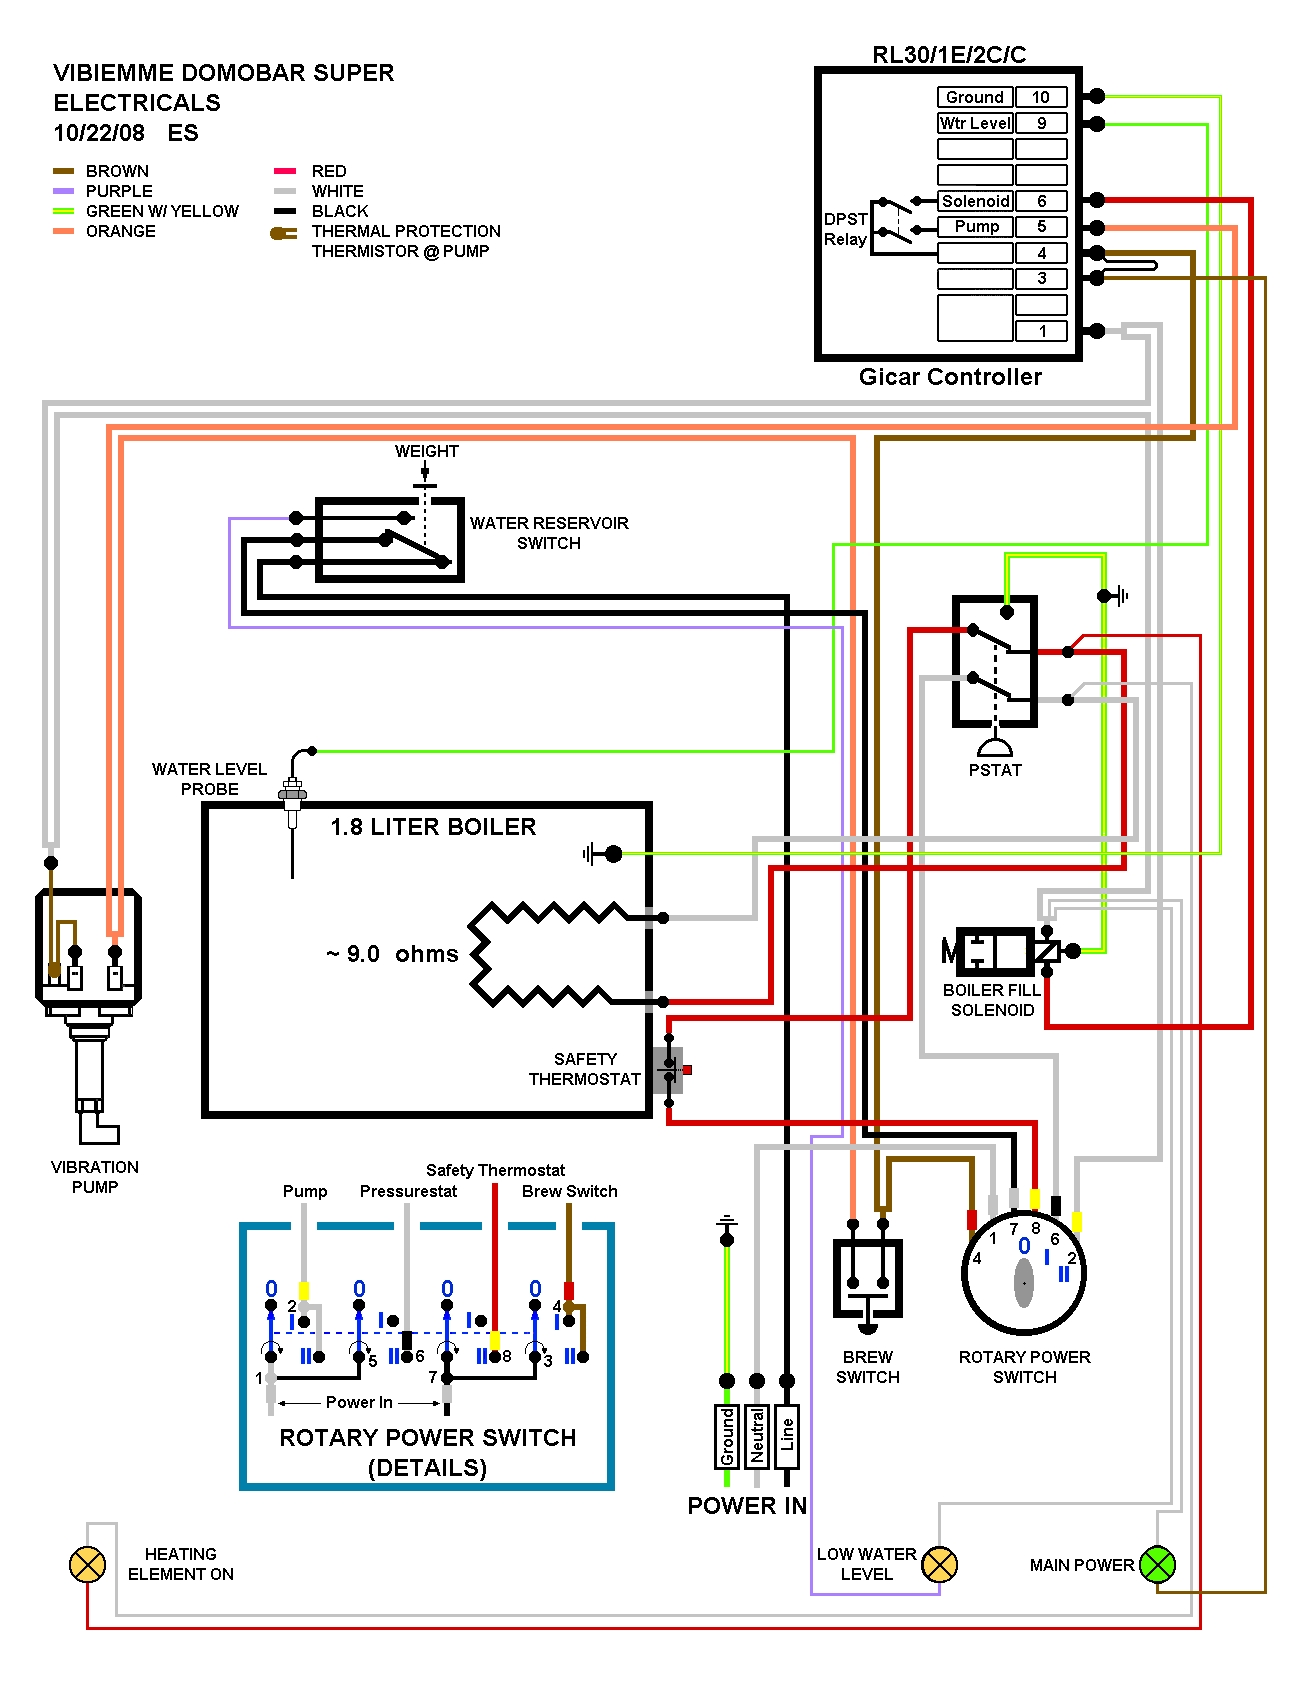 vibiemme domobar super electrical diagram 97 ford ranger electrical diagram for lights inside full size drawing